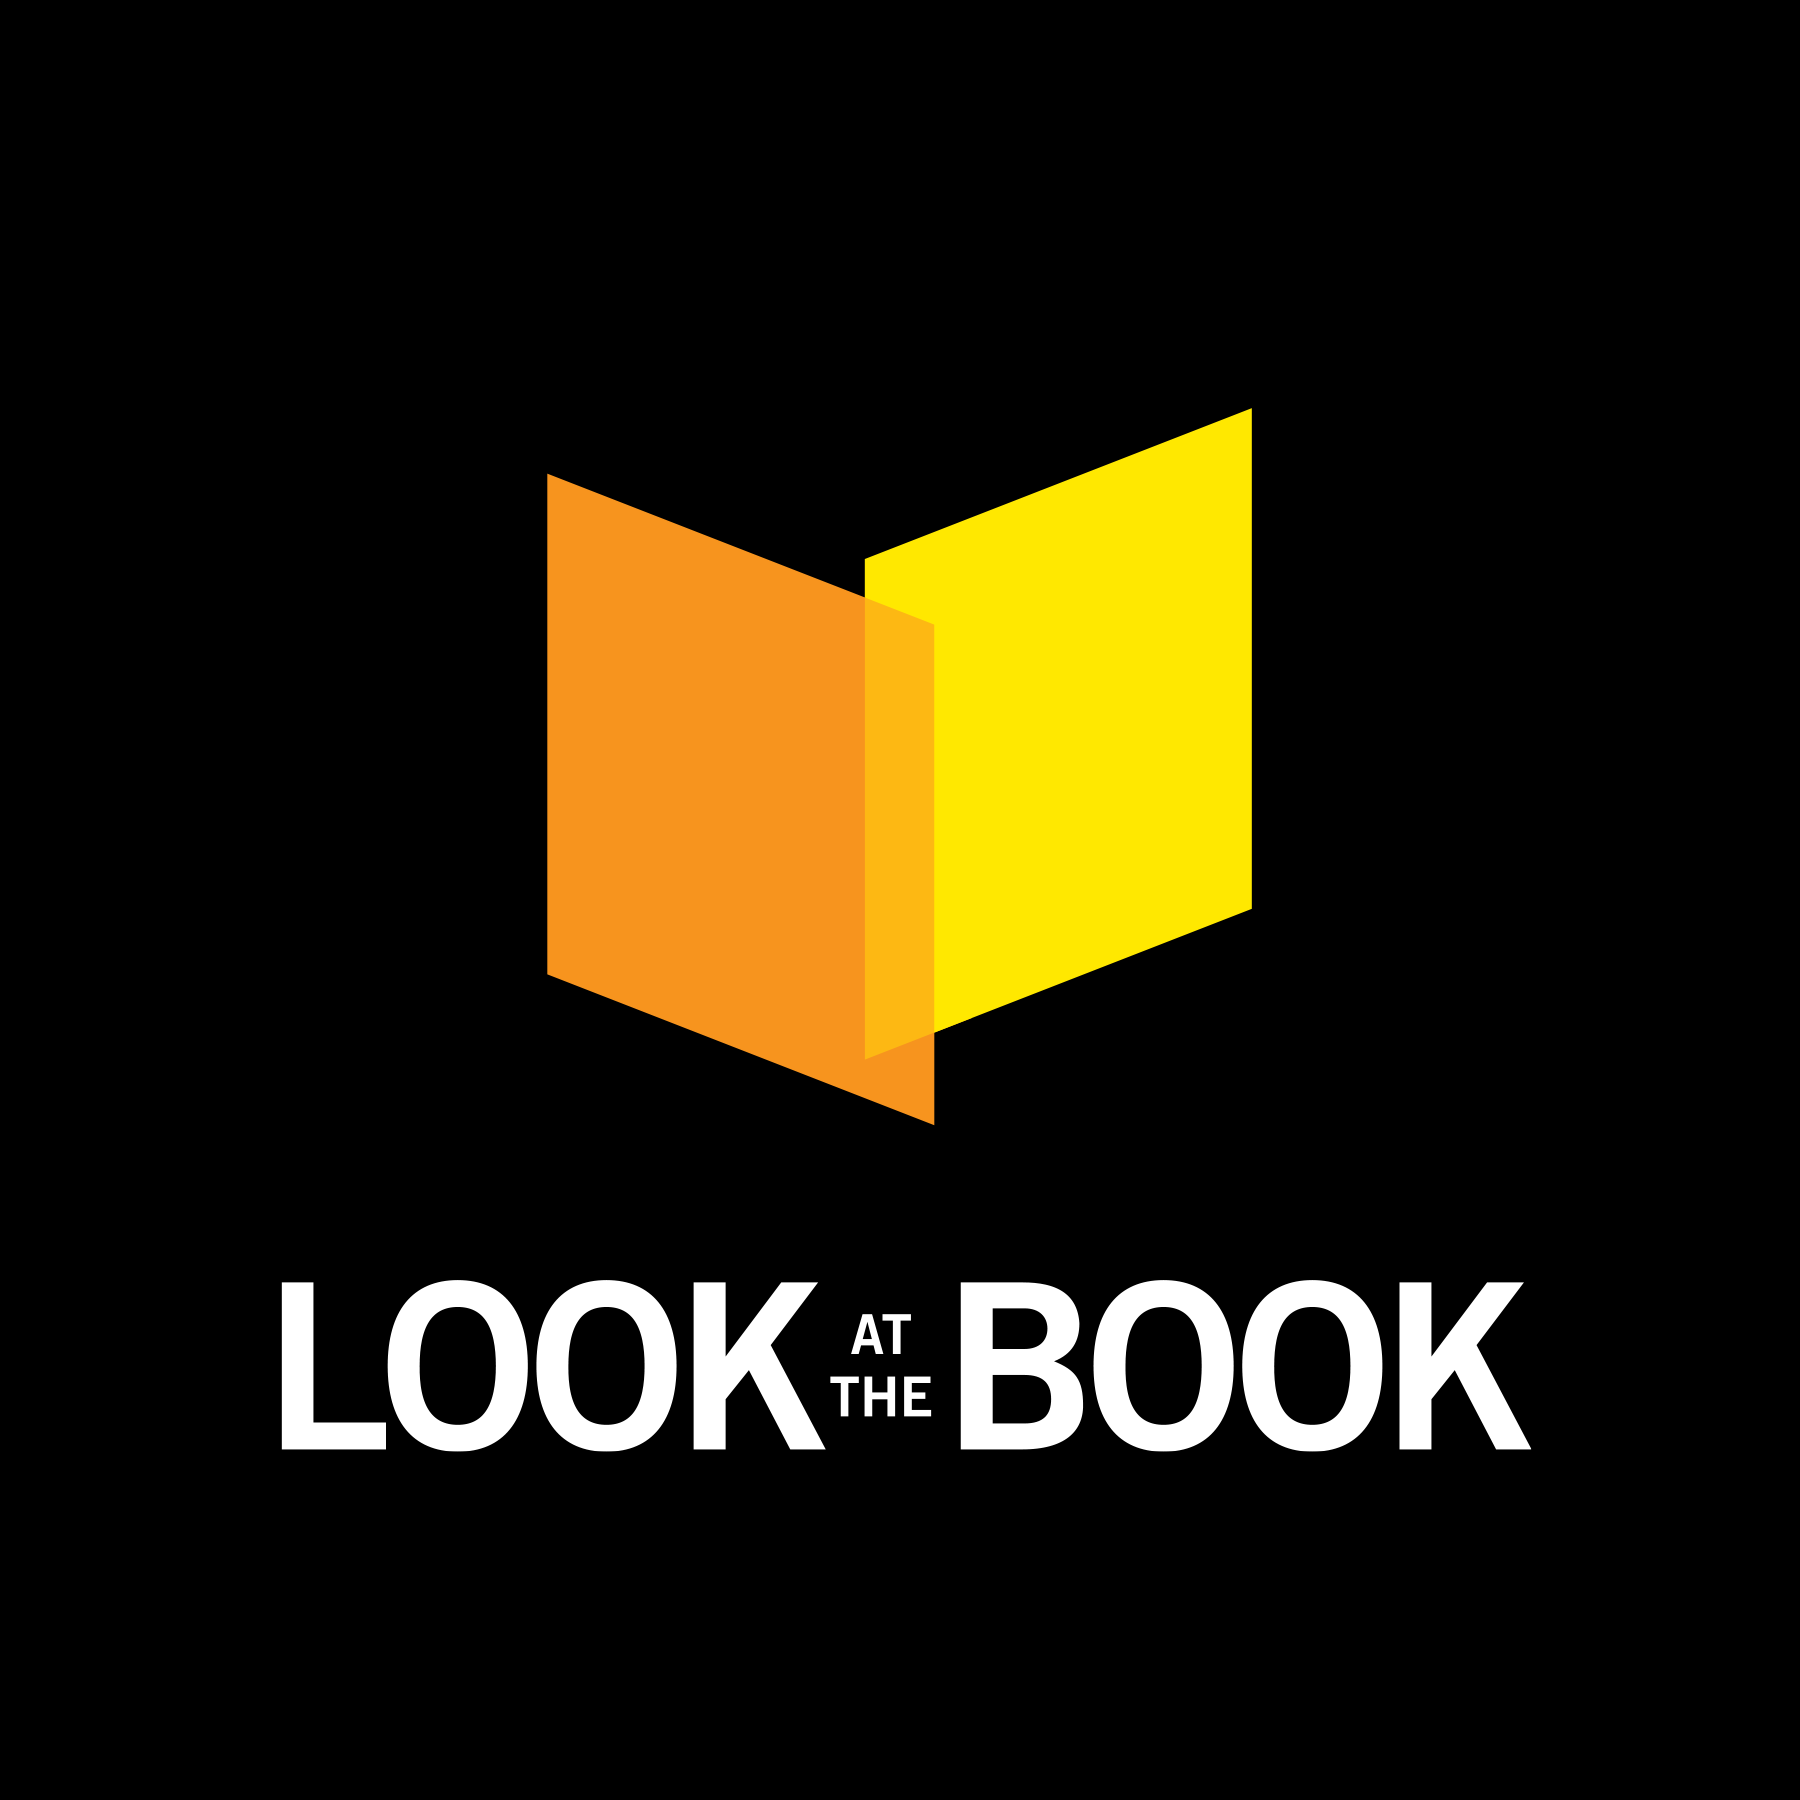 Look at the book image